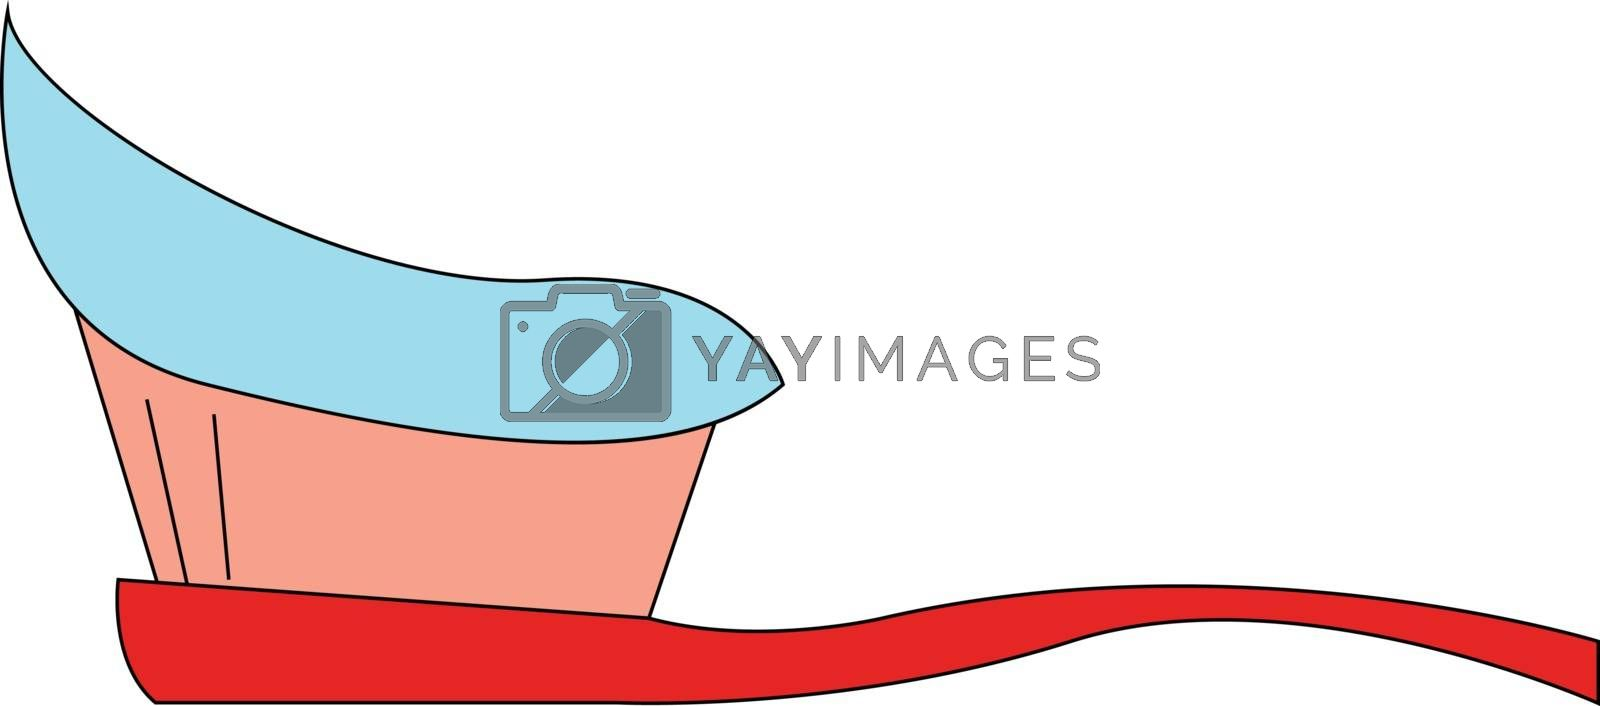 Toothbrush hand drawn design, illustration, vector on white background.